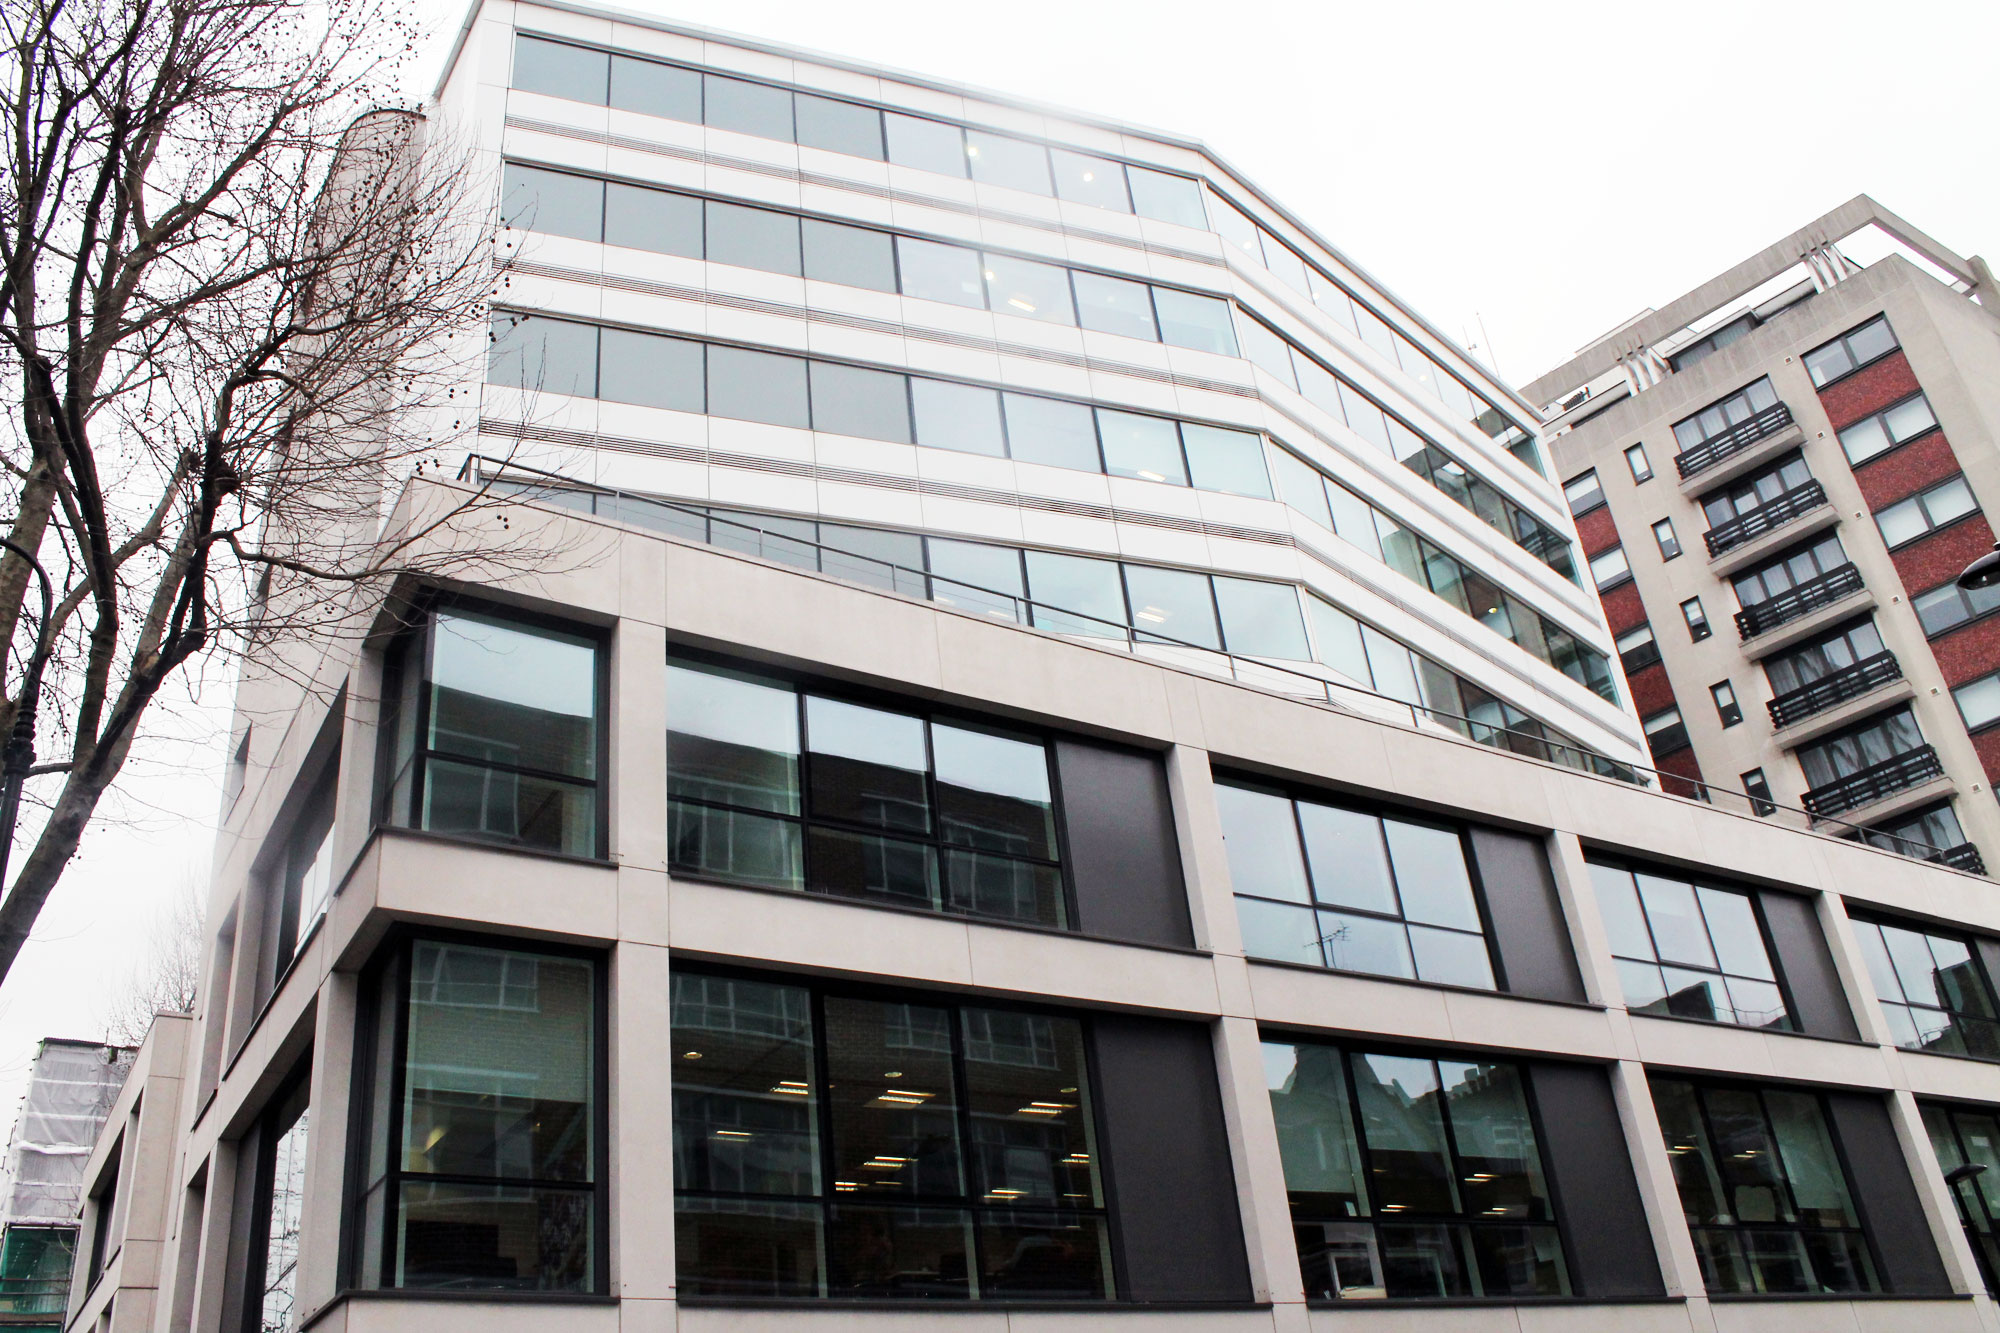 60 Charlotte Street Structural Renovations Limited